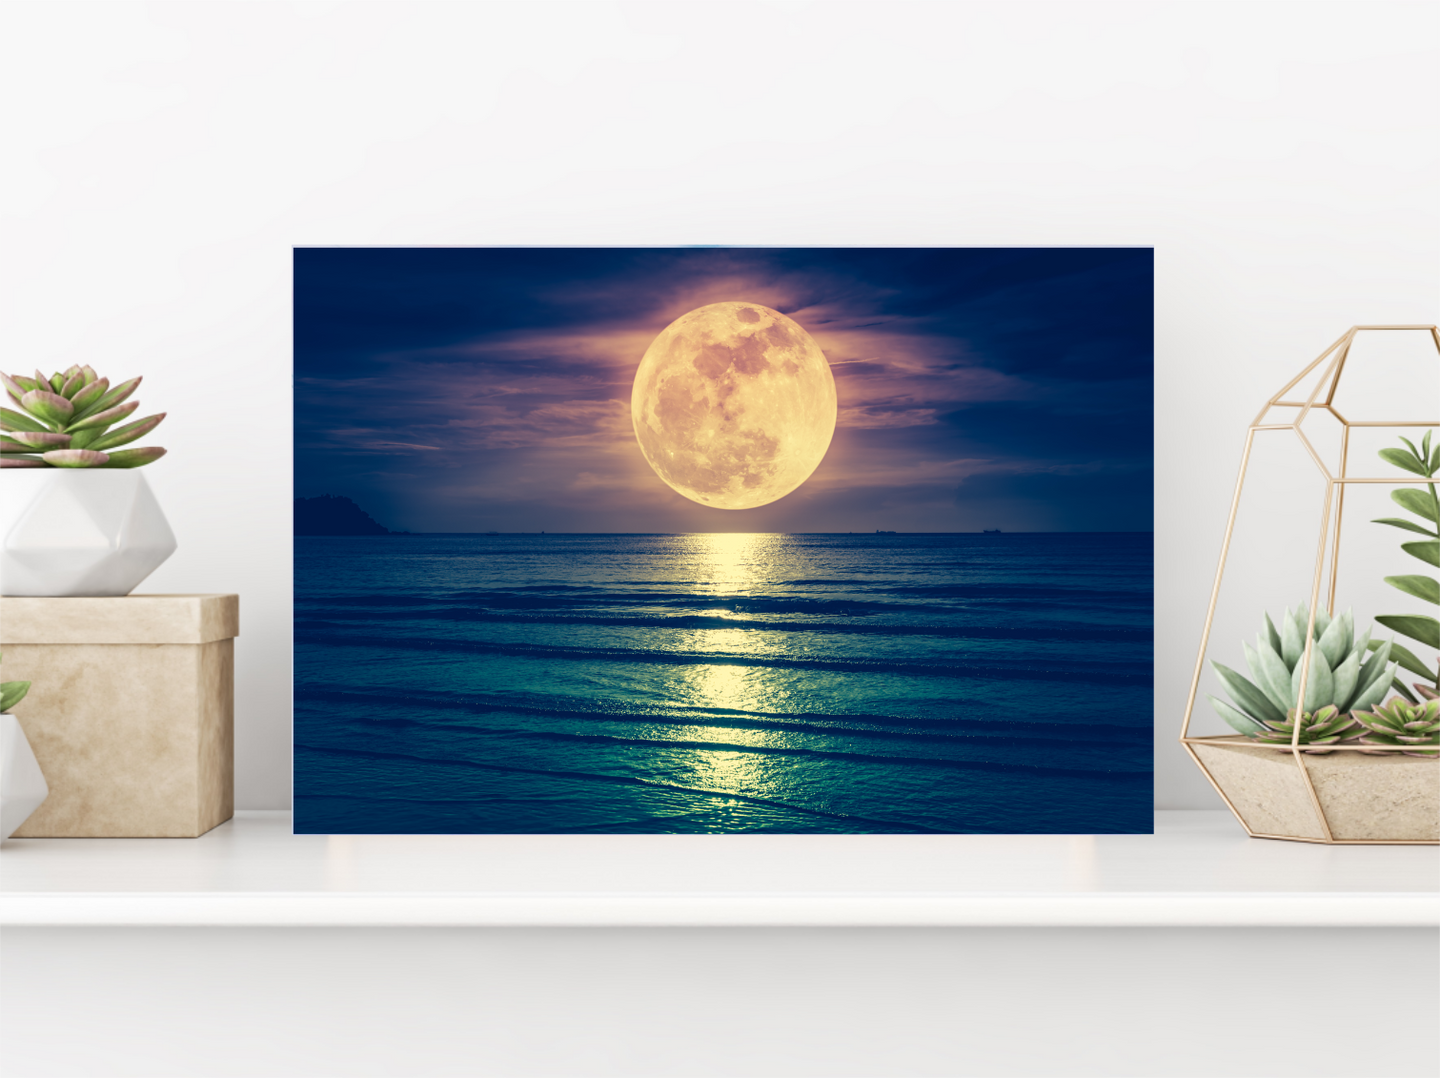 Tableau décoratif : Moonlight at the ocean